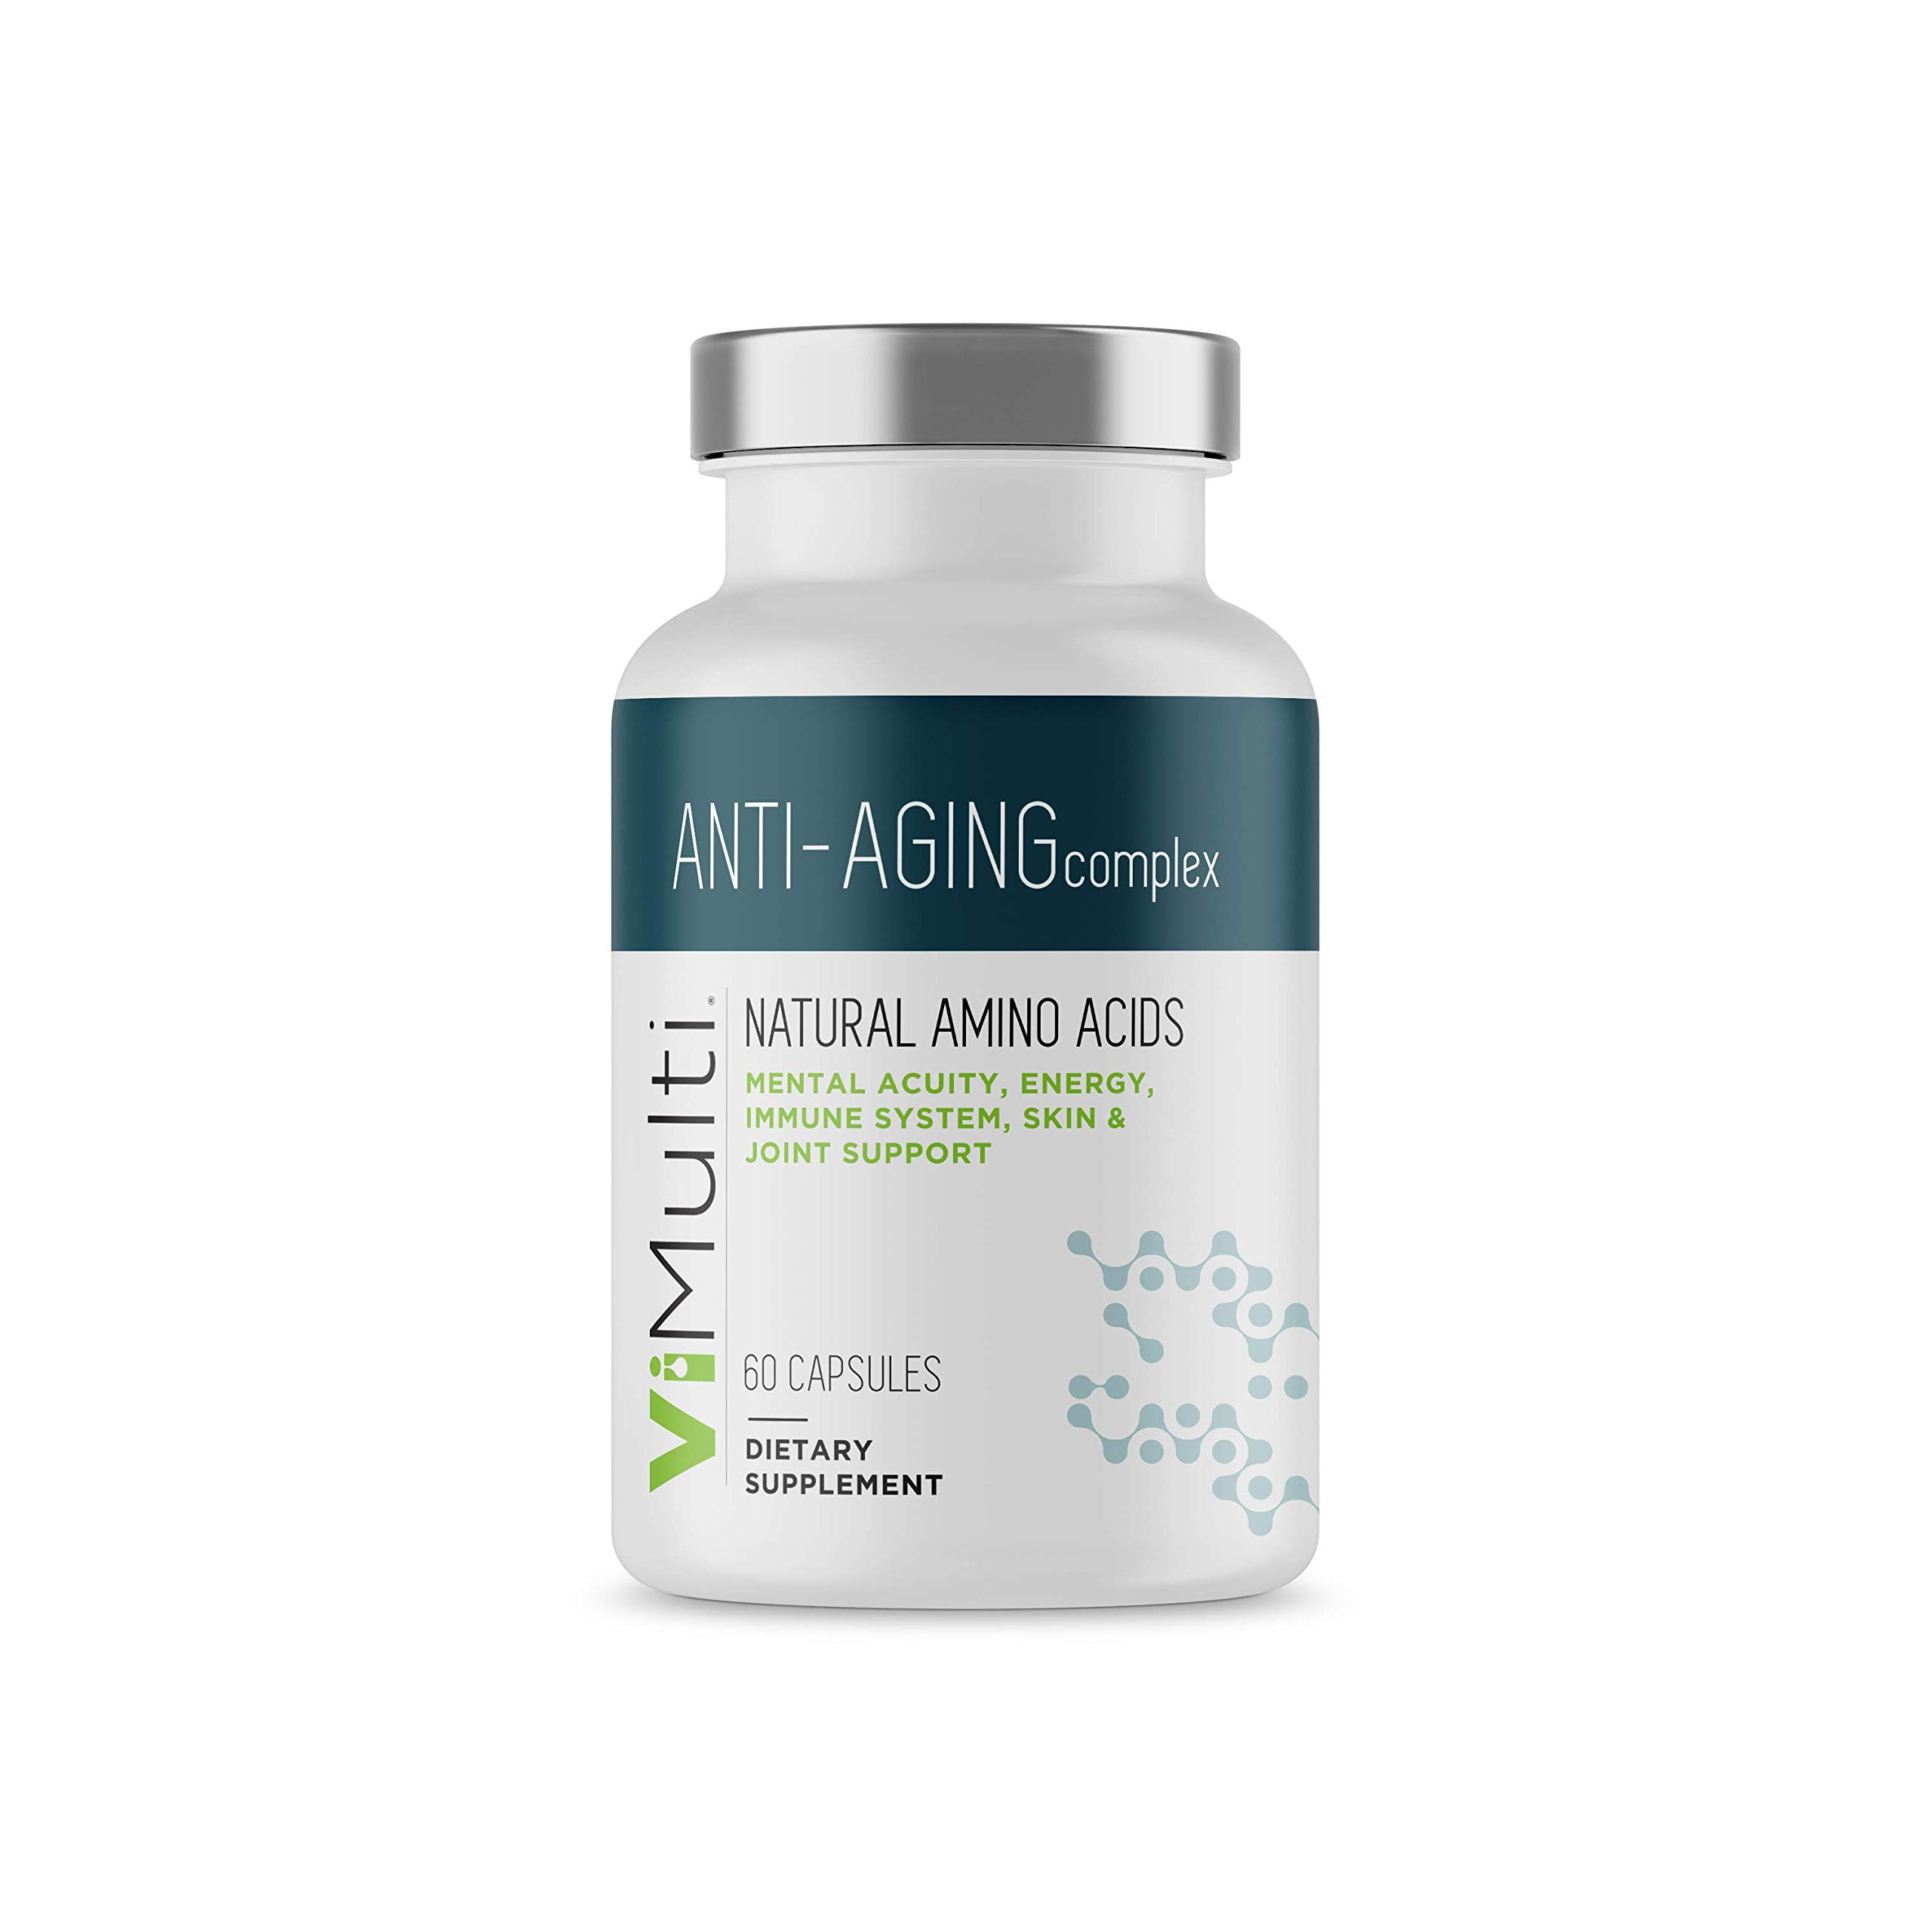 ViMulti Best Natural Amino Acid Anti-Aging Supplement for Longevity – Clinically Proven - Supports Mental Acuity, Immune System, Muscle Tone & Skin Plus Natural Energy & Endurance